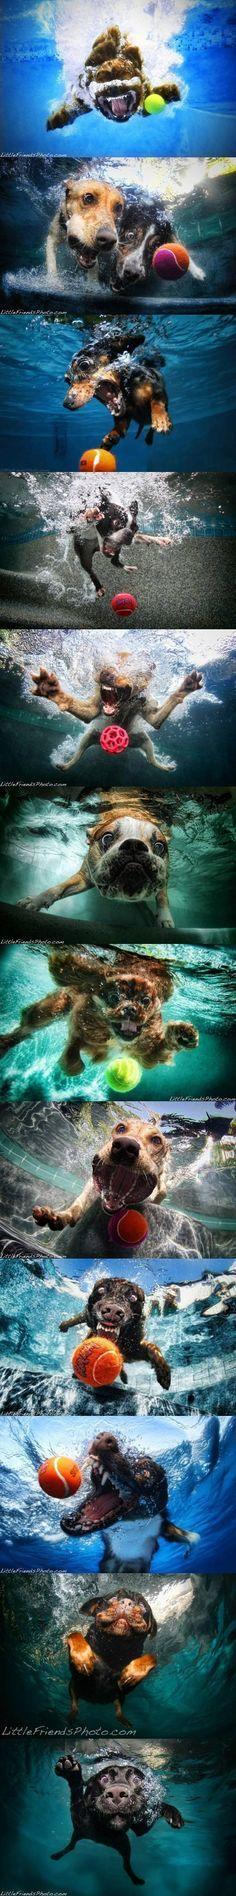 underwater dogs Silly Dogs Funny Dogs Cute Dogs Funny Animals I Love